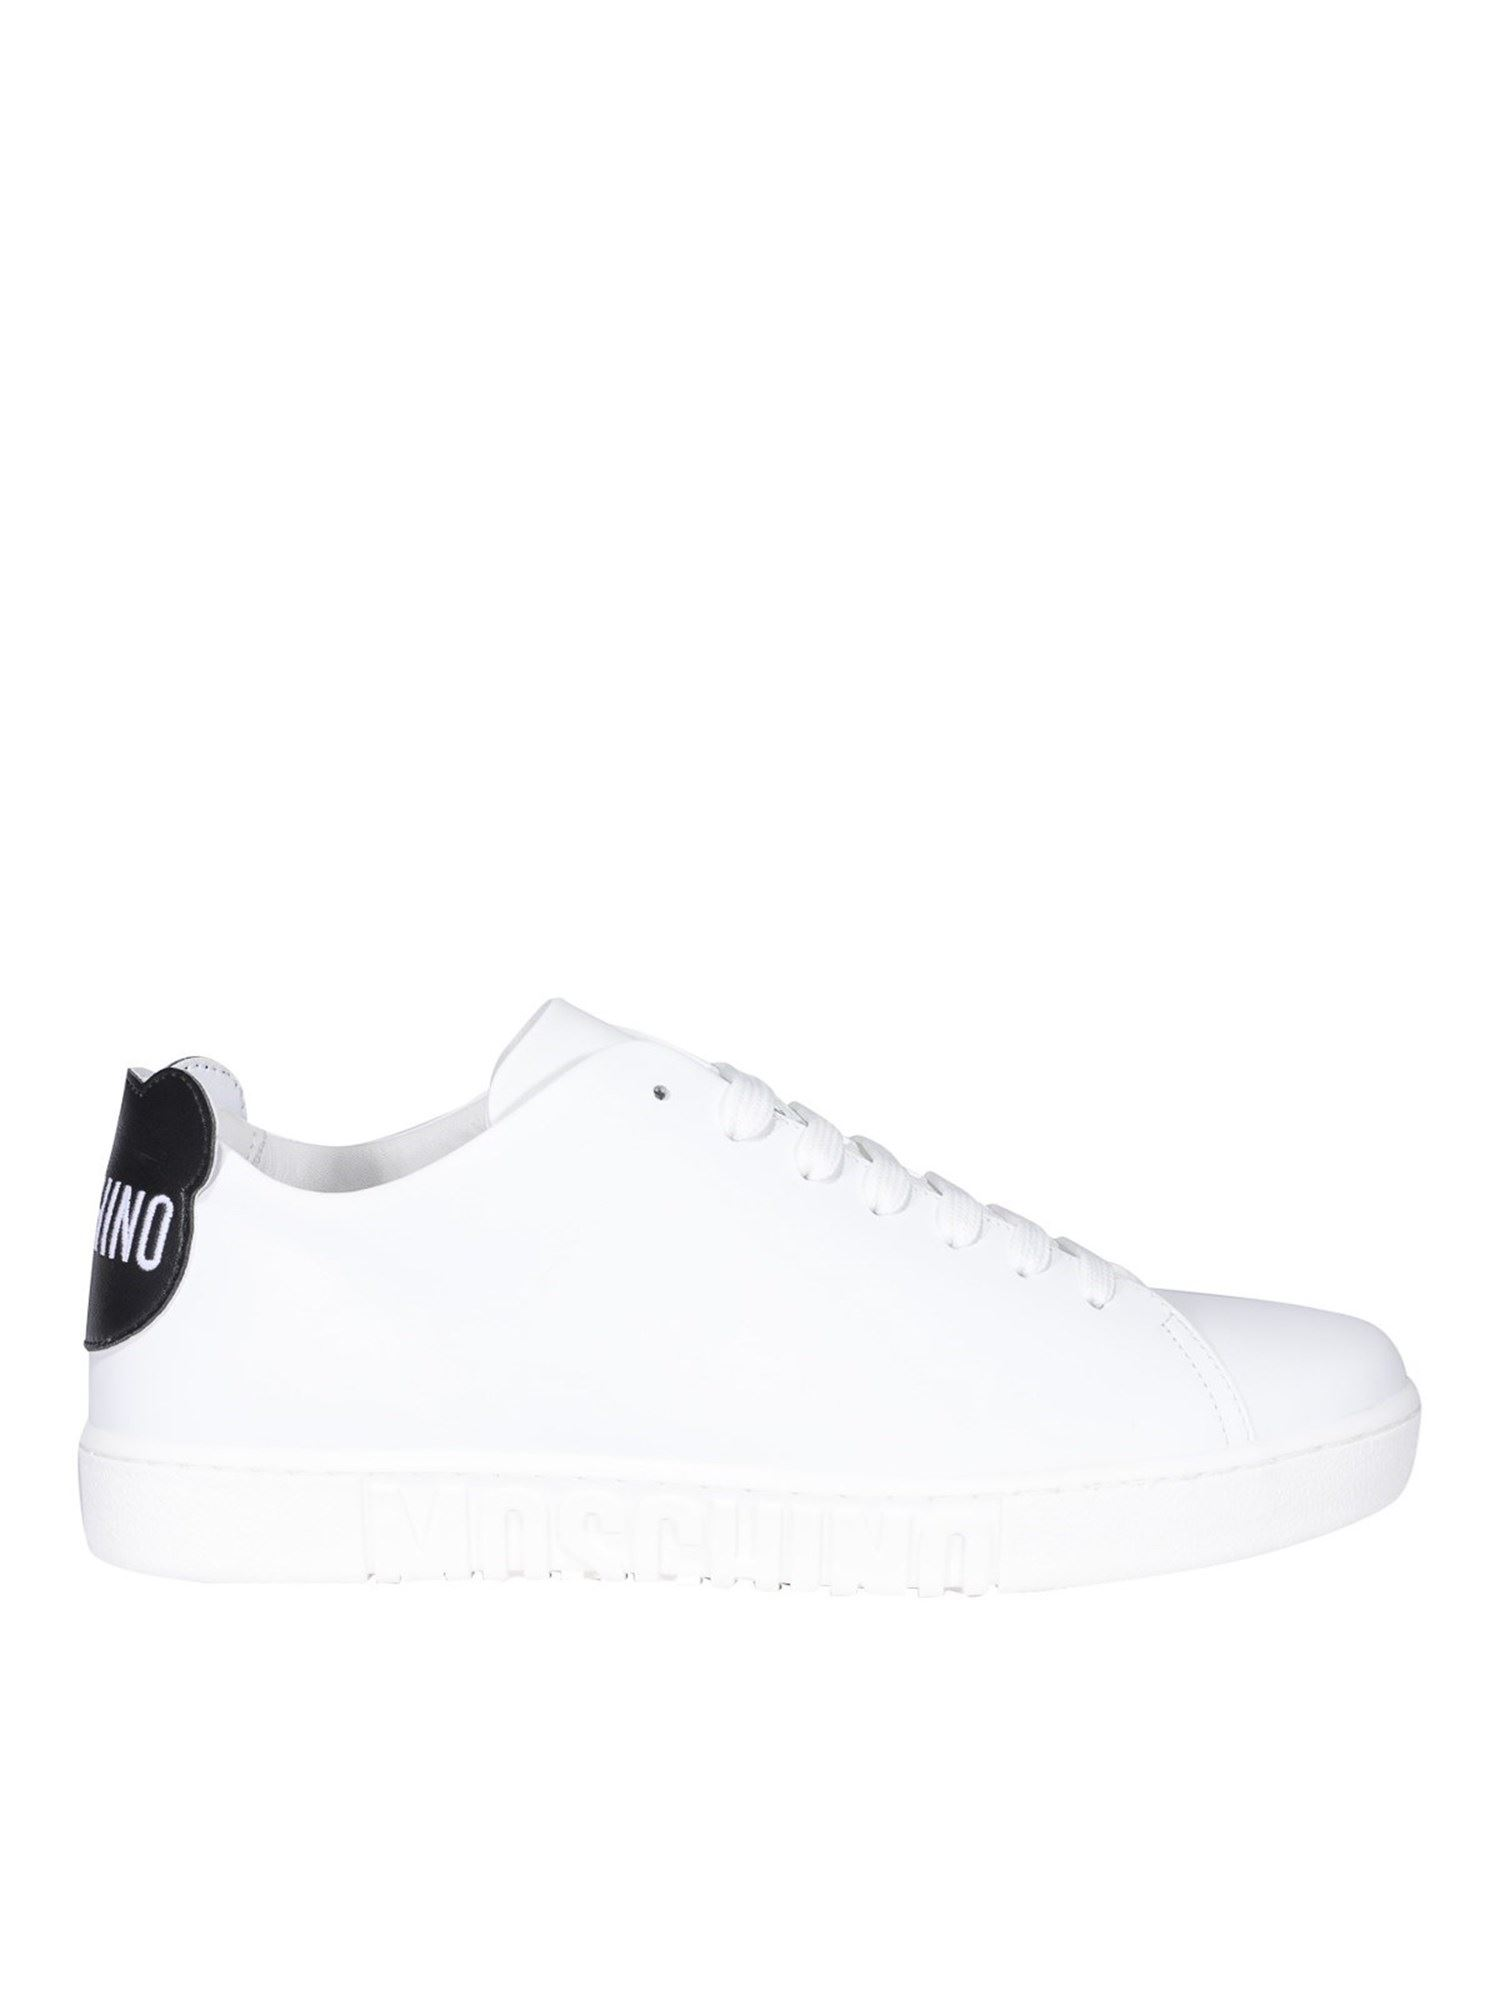 Moschino Leathers WHITE LEATHER SNEAKERS